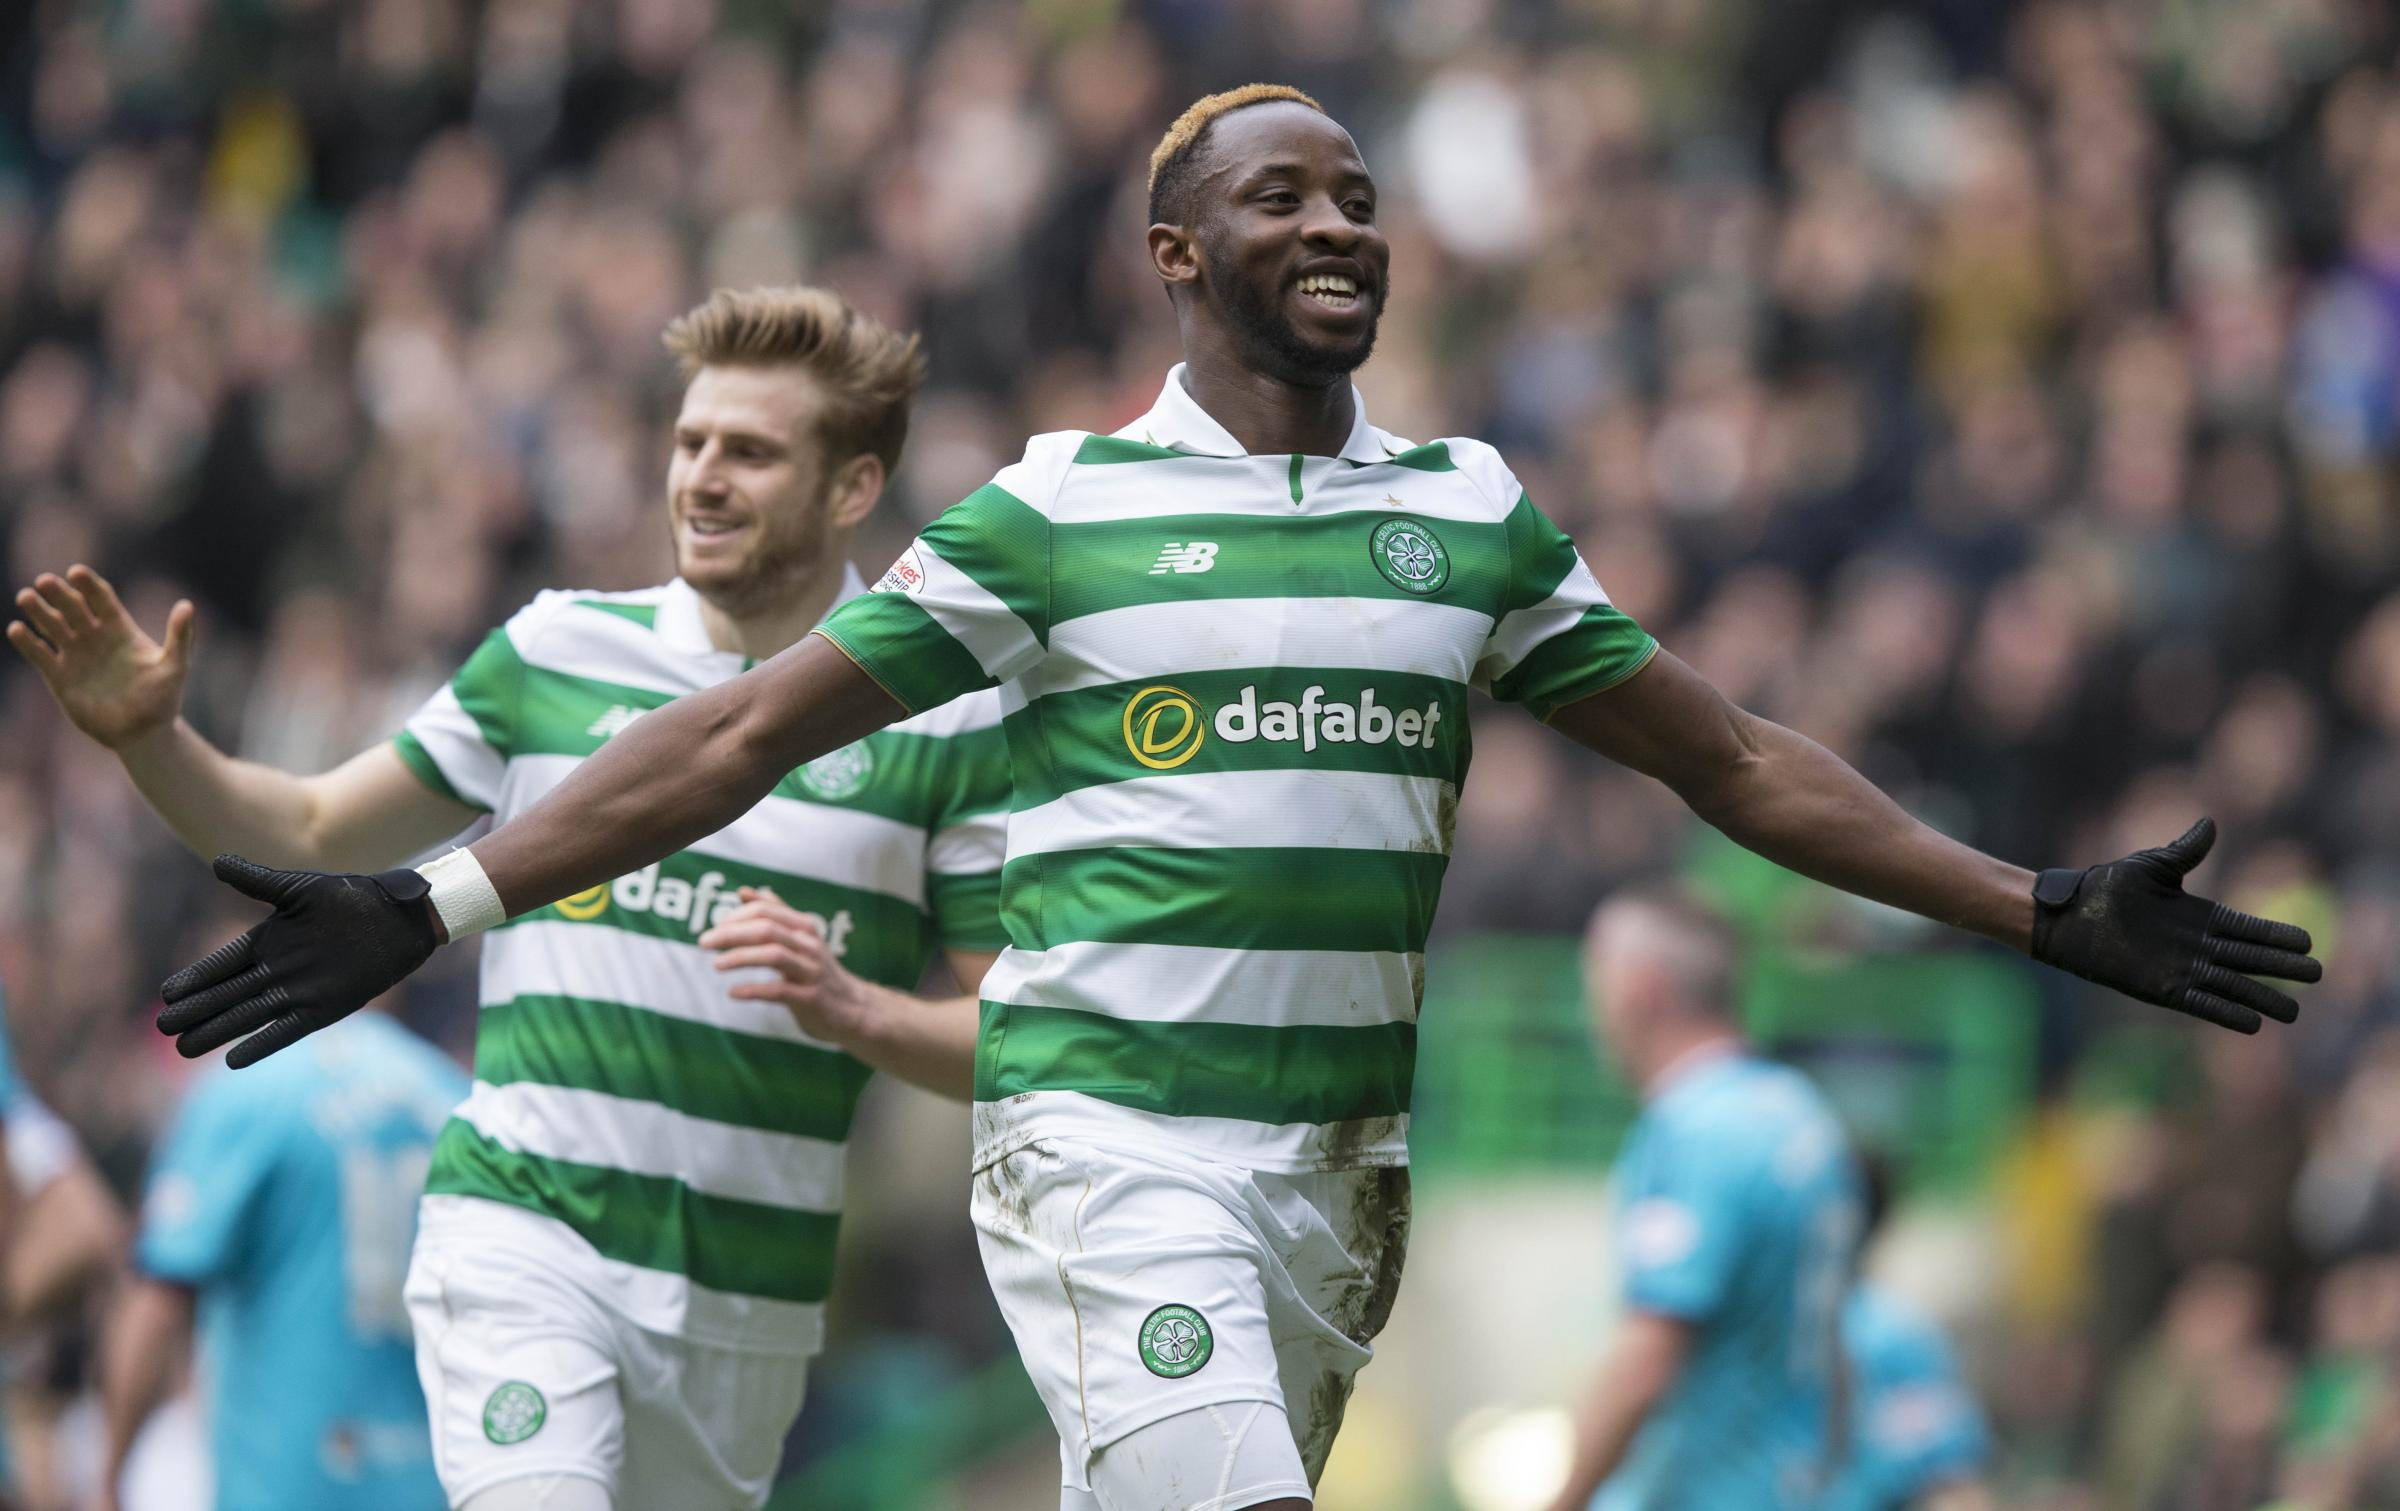 Celtic 2, Hamilton 0; Moussa Dembele double sews up another three points for Brendan Rodgers's unbeaten side